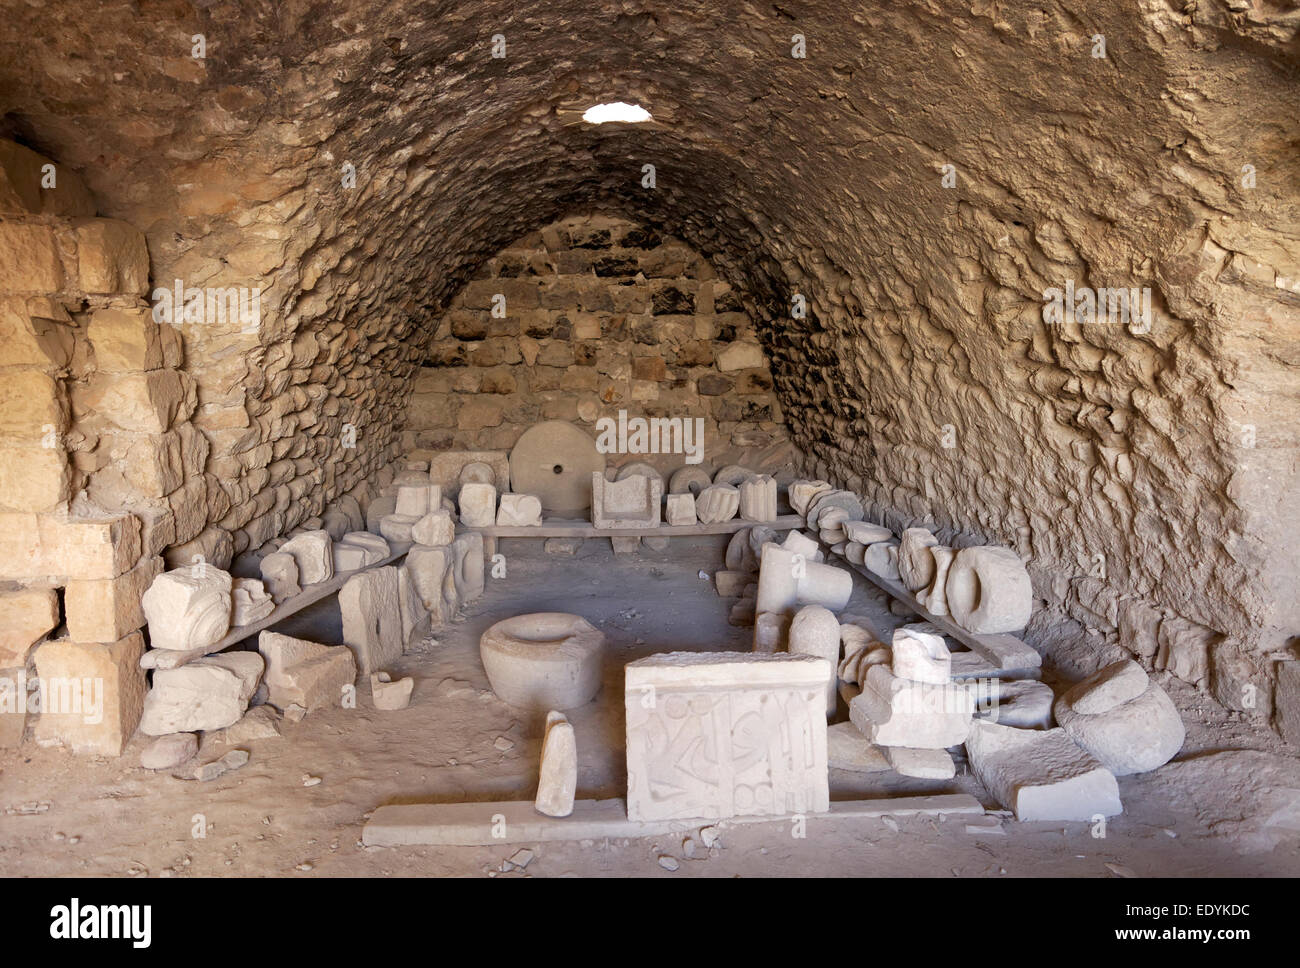 Vault with rock fragments, Montreal Crusader castle, also Mons Regalis, Shoubak or Shawbak, fortress, hill castle, - Stock Image